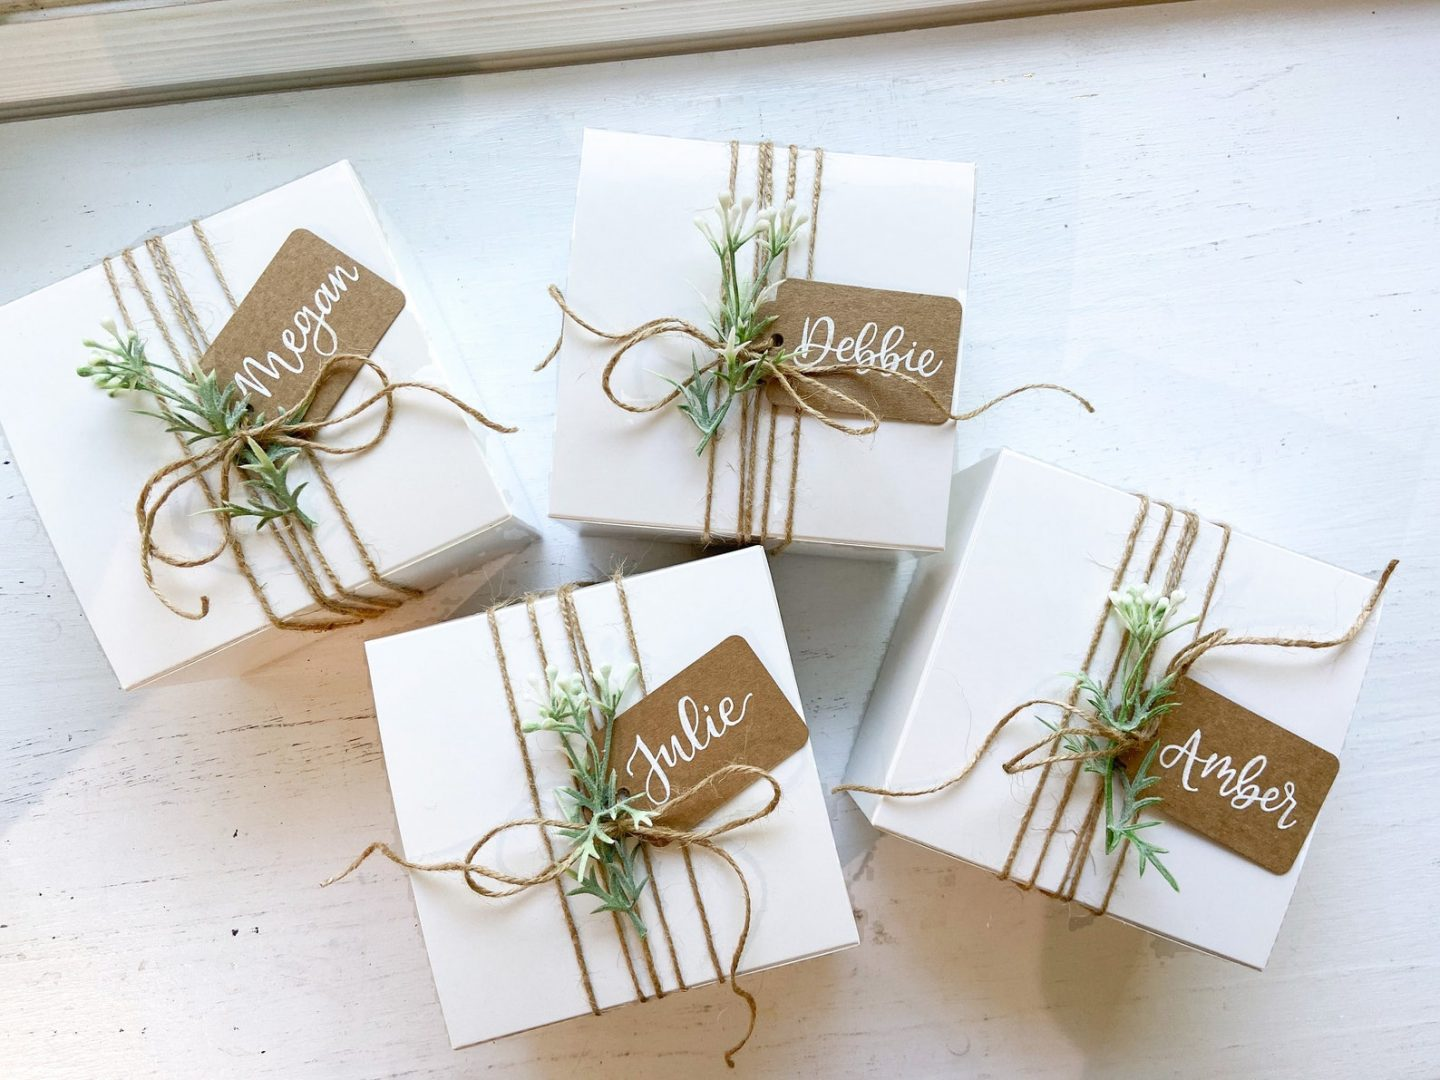 White Christmas gift wrapping idea with brown tags